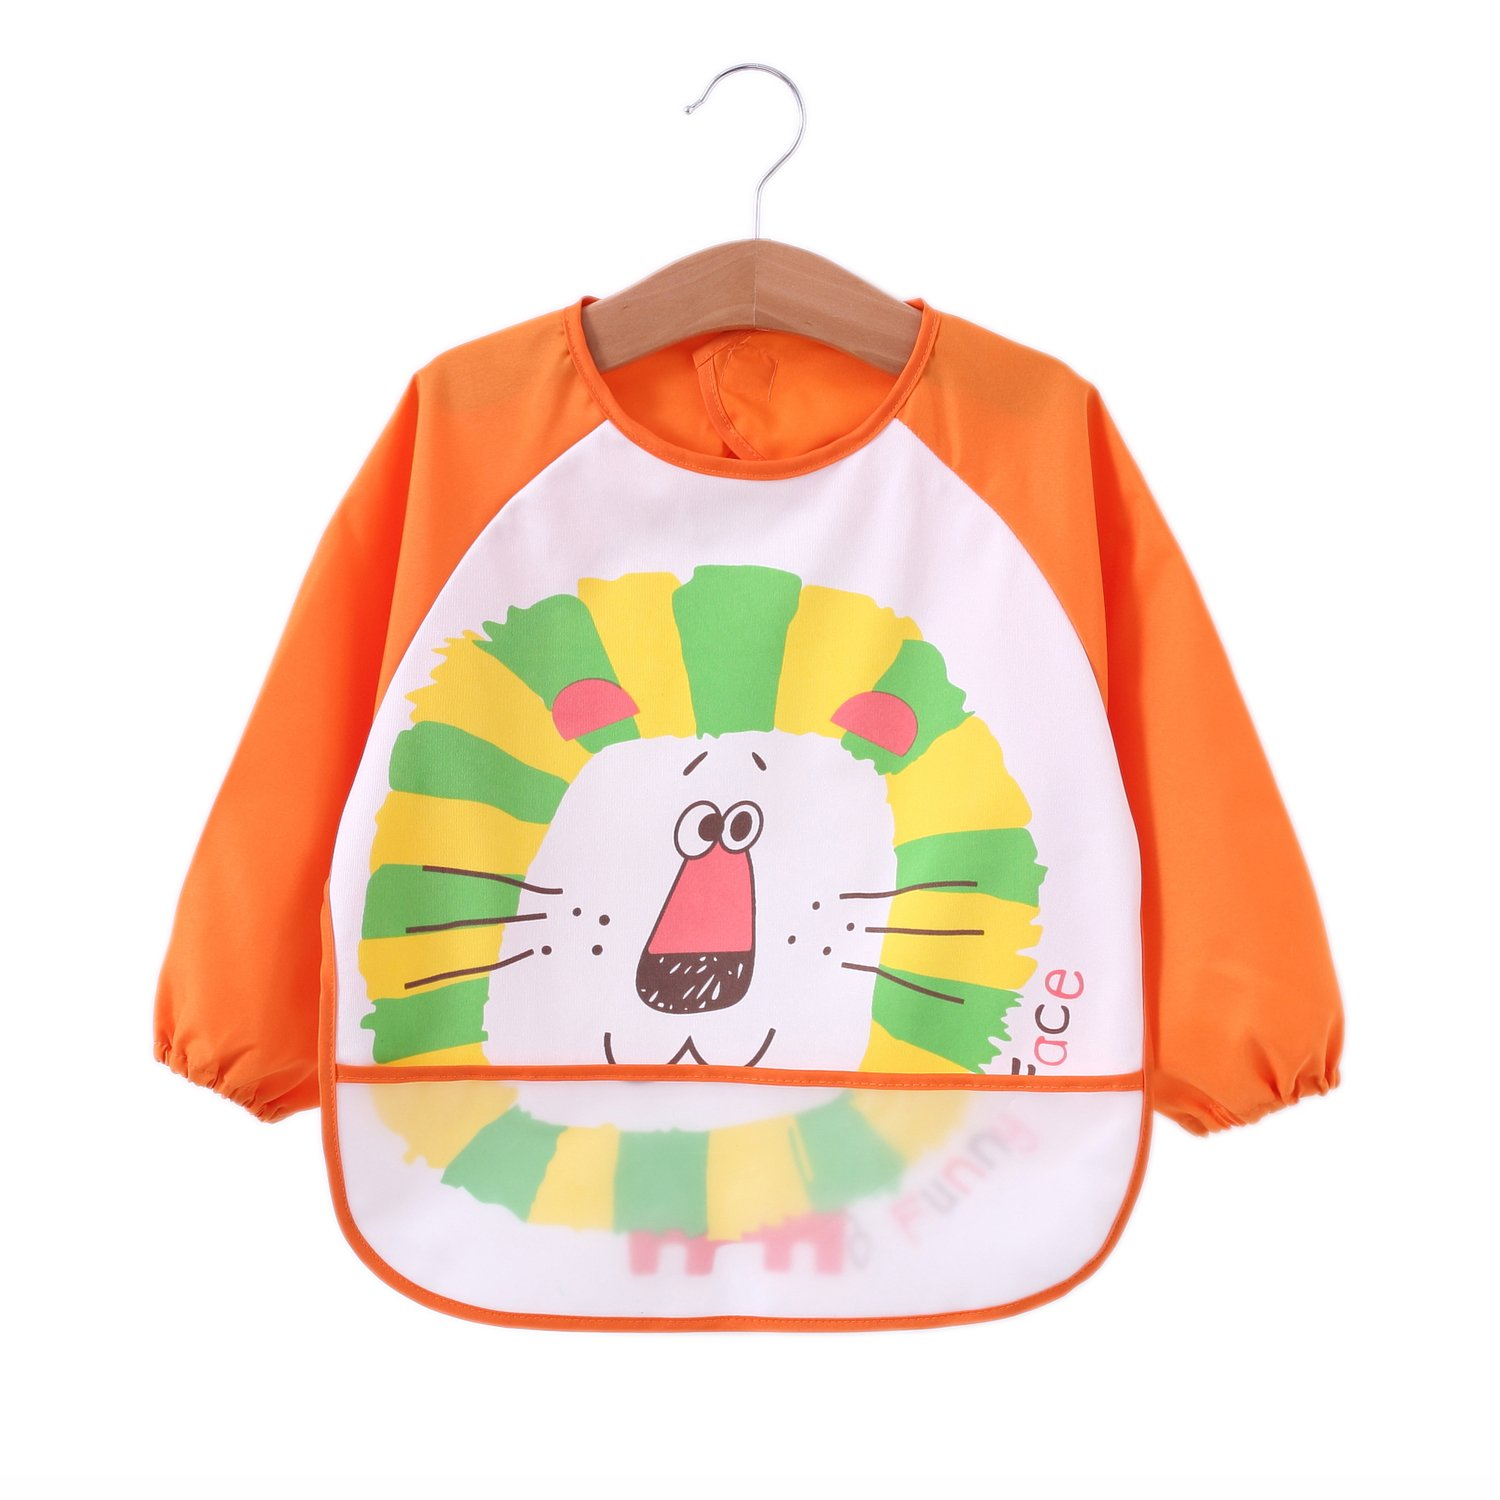 Momloves Cute Baby Toddler Waterproof Sleeved Bib,Water Resistant,Funny Personalized for Boys /& Girls